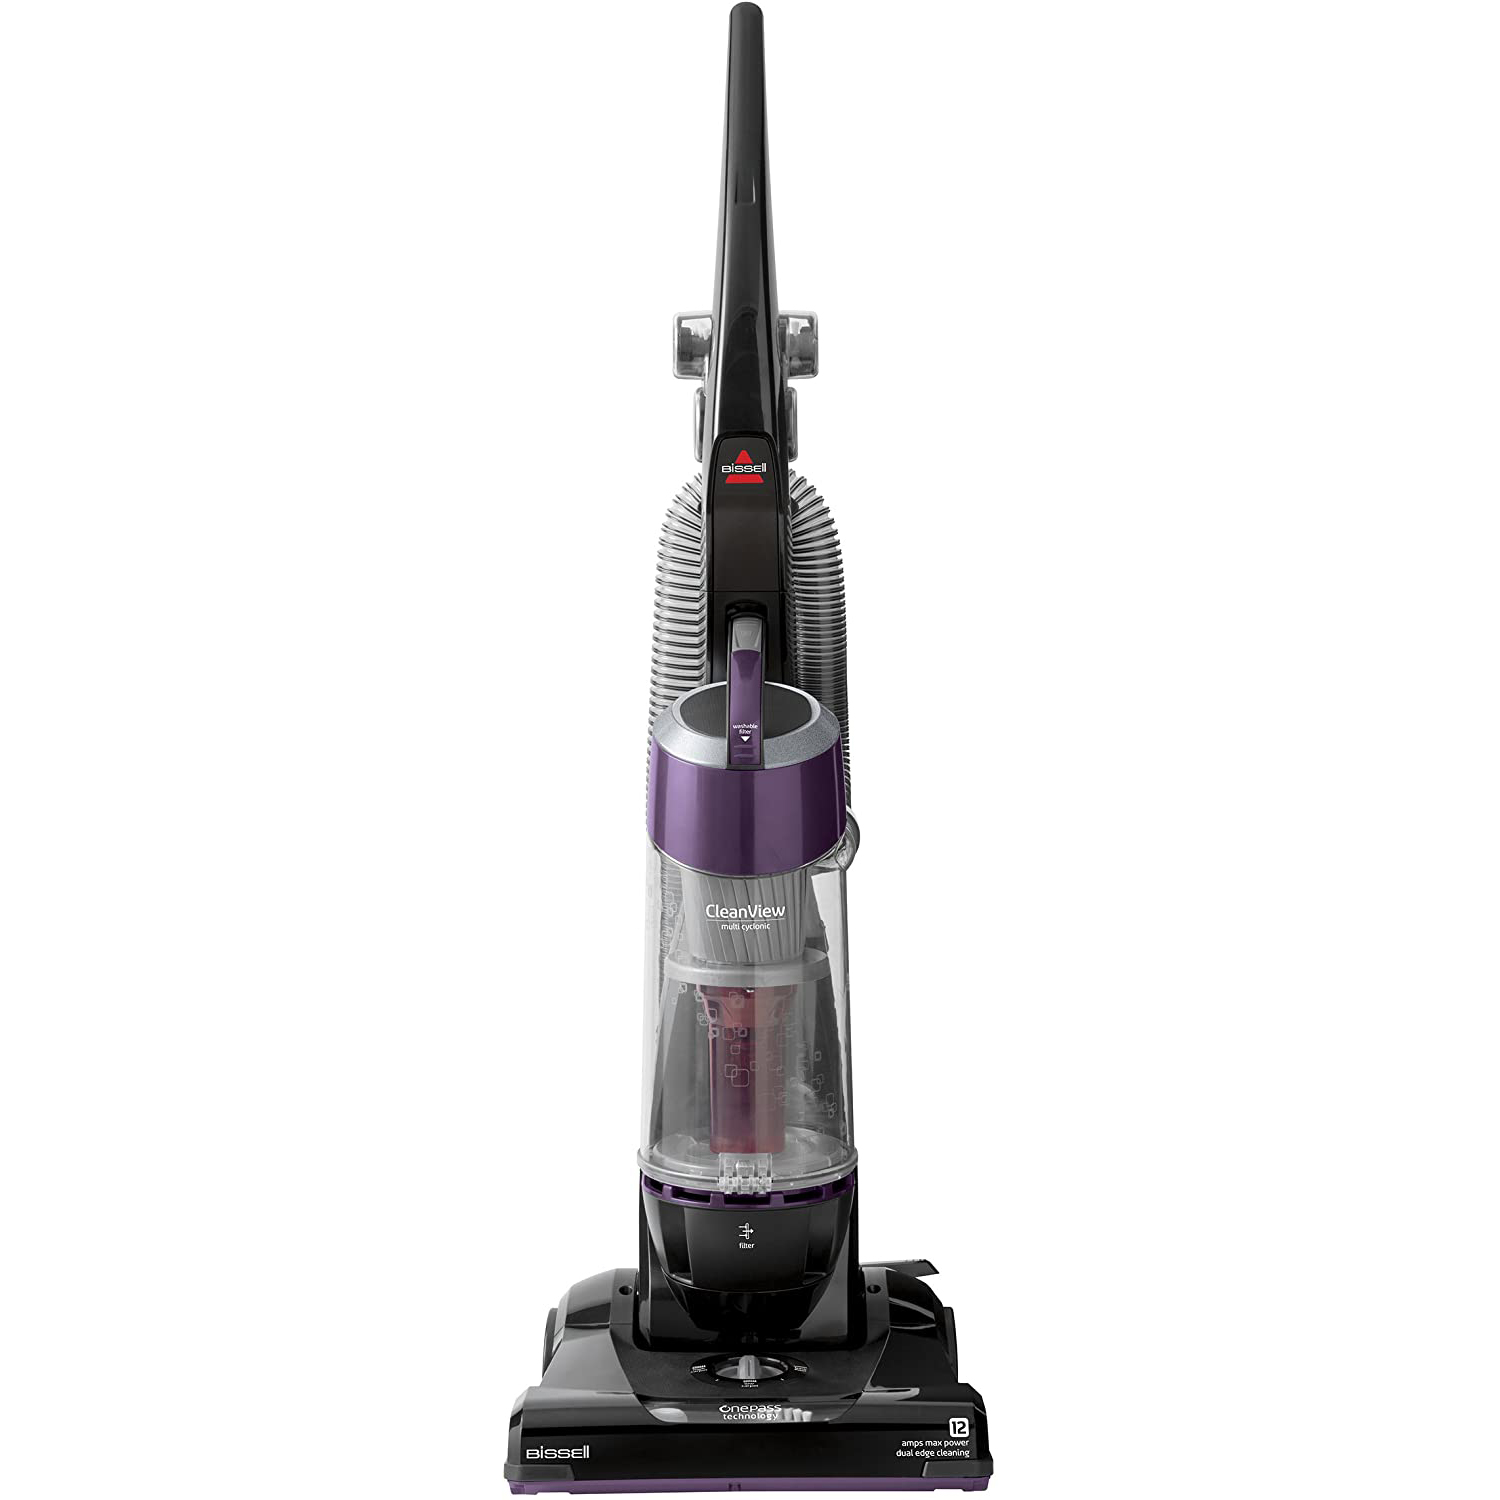 Bissell Cleanview Multi-Cyclonic Vacuum Cleaner